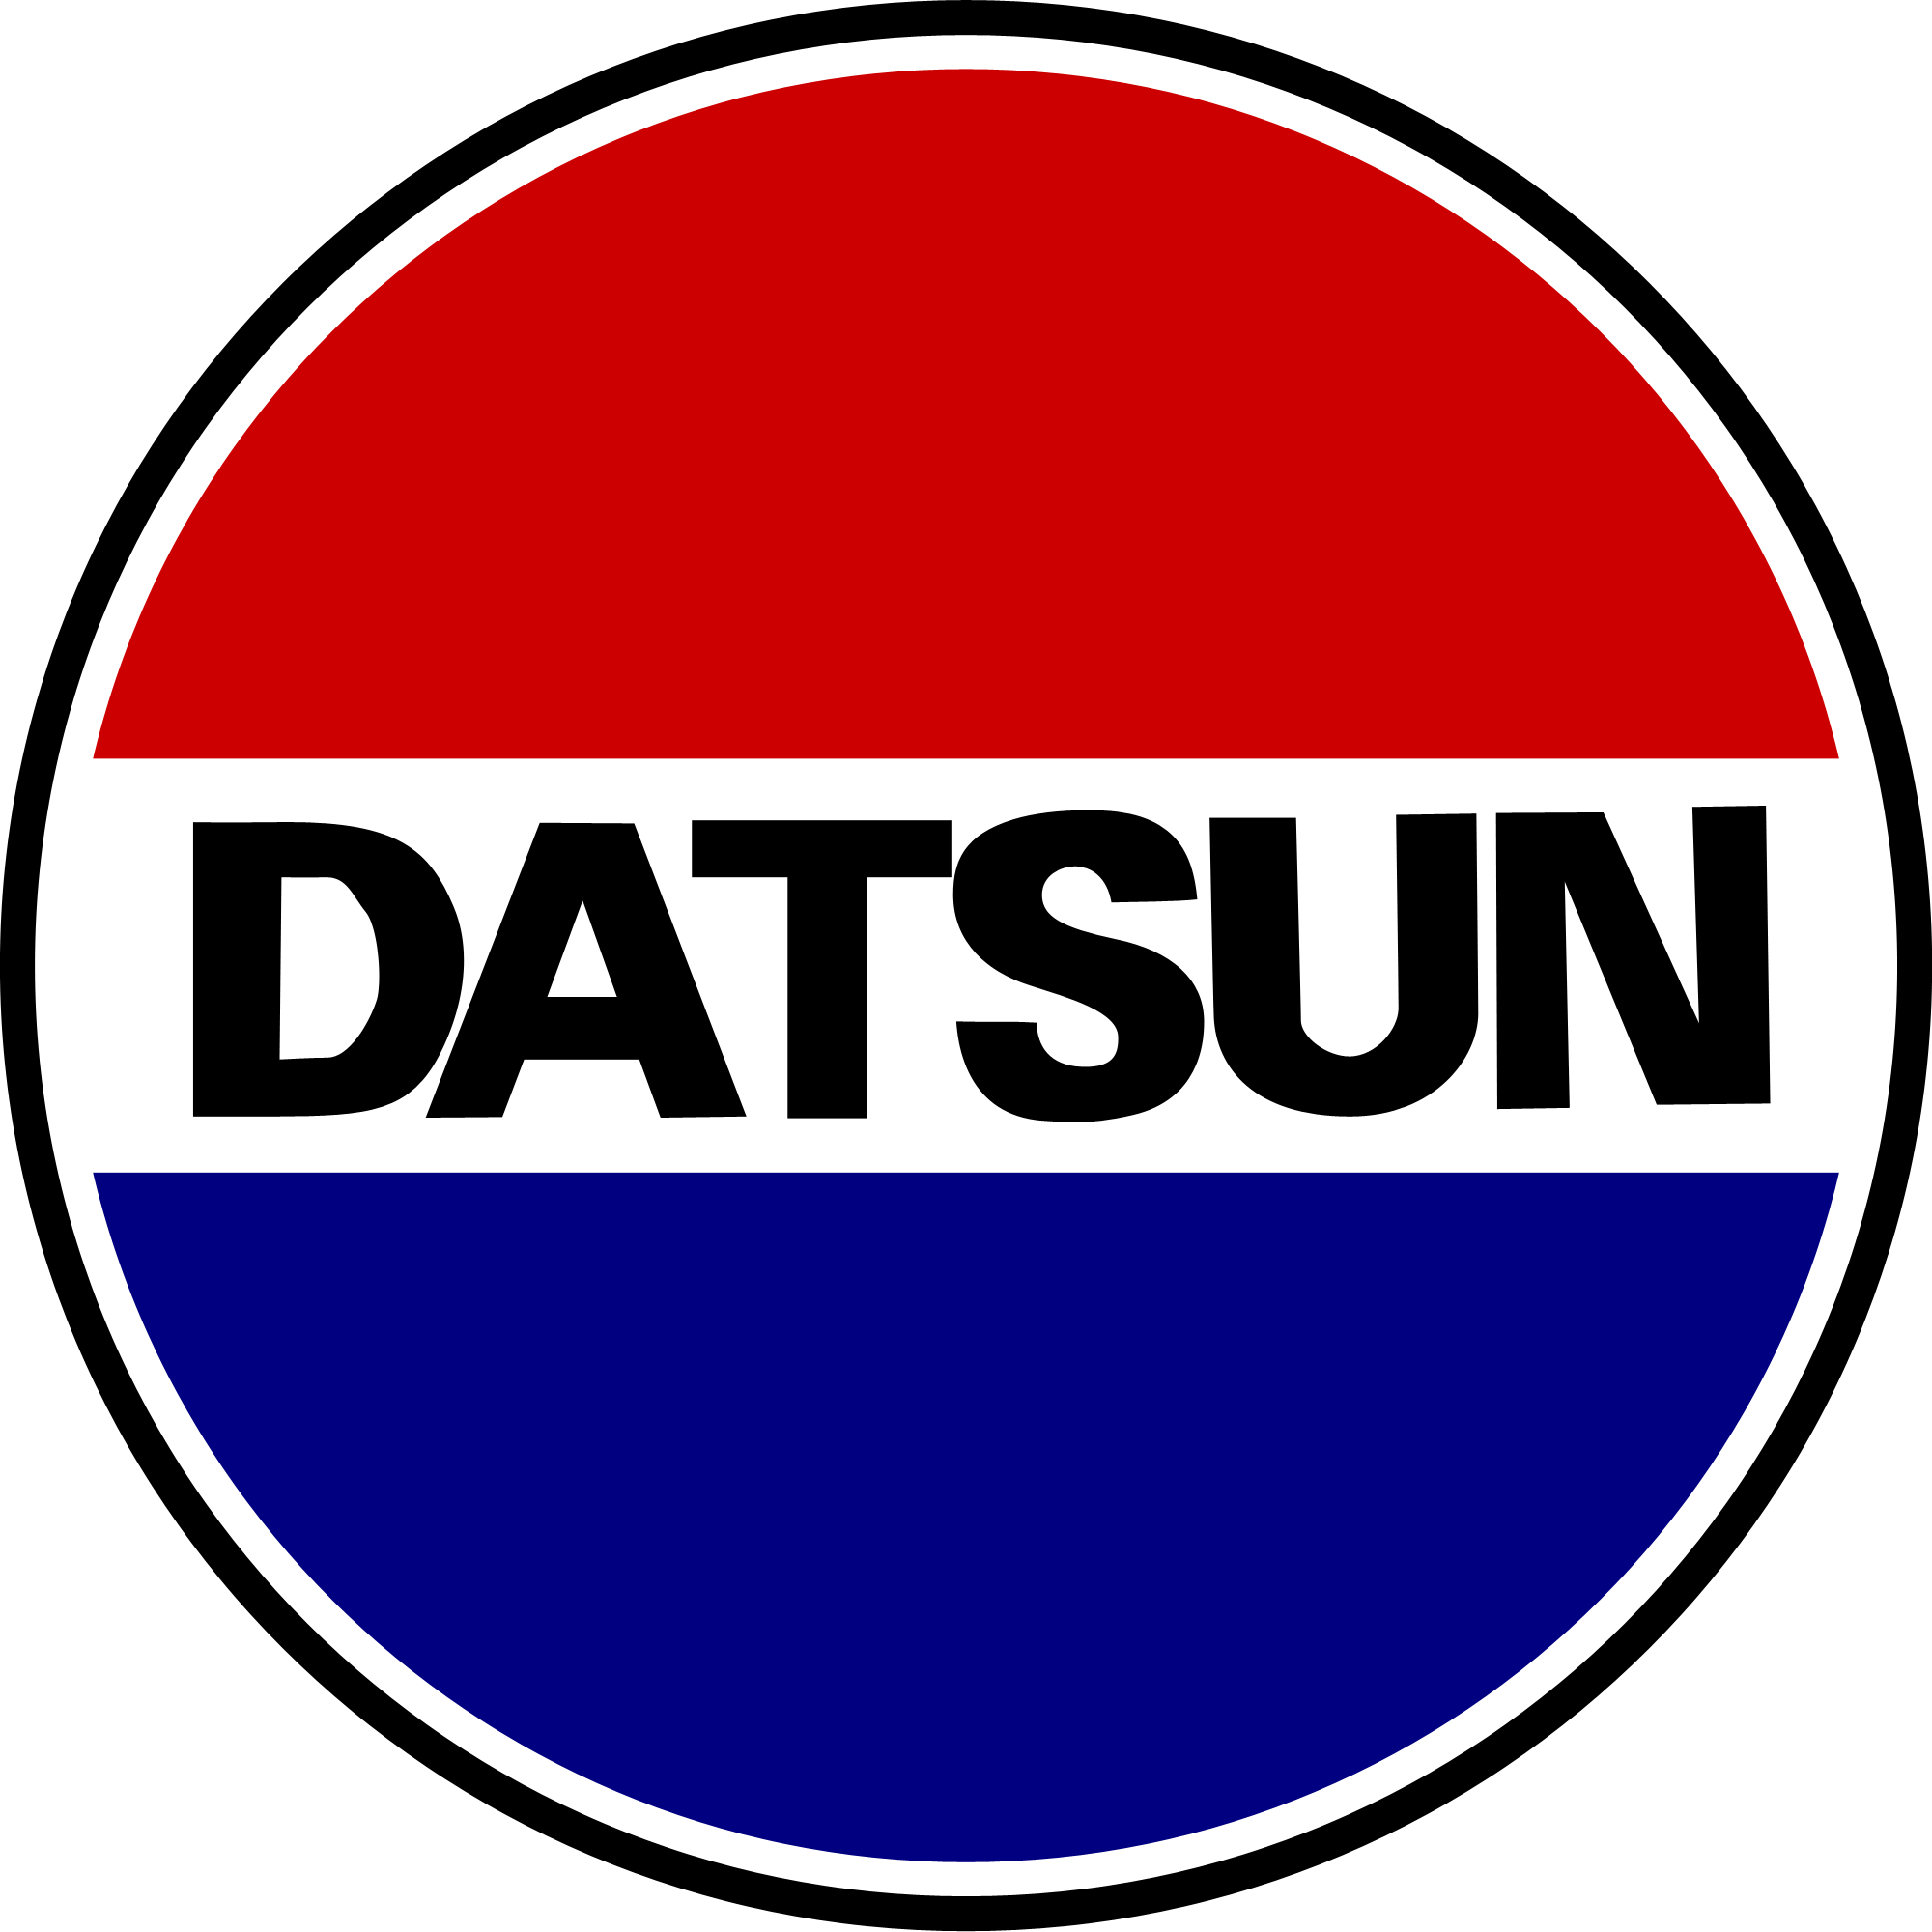 Pin By Owen T On Datsun/Nissan